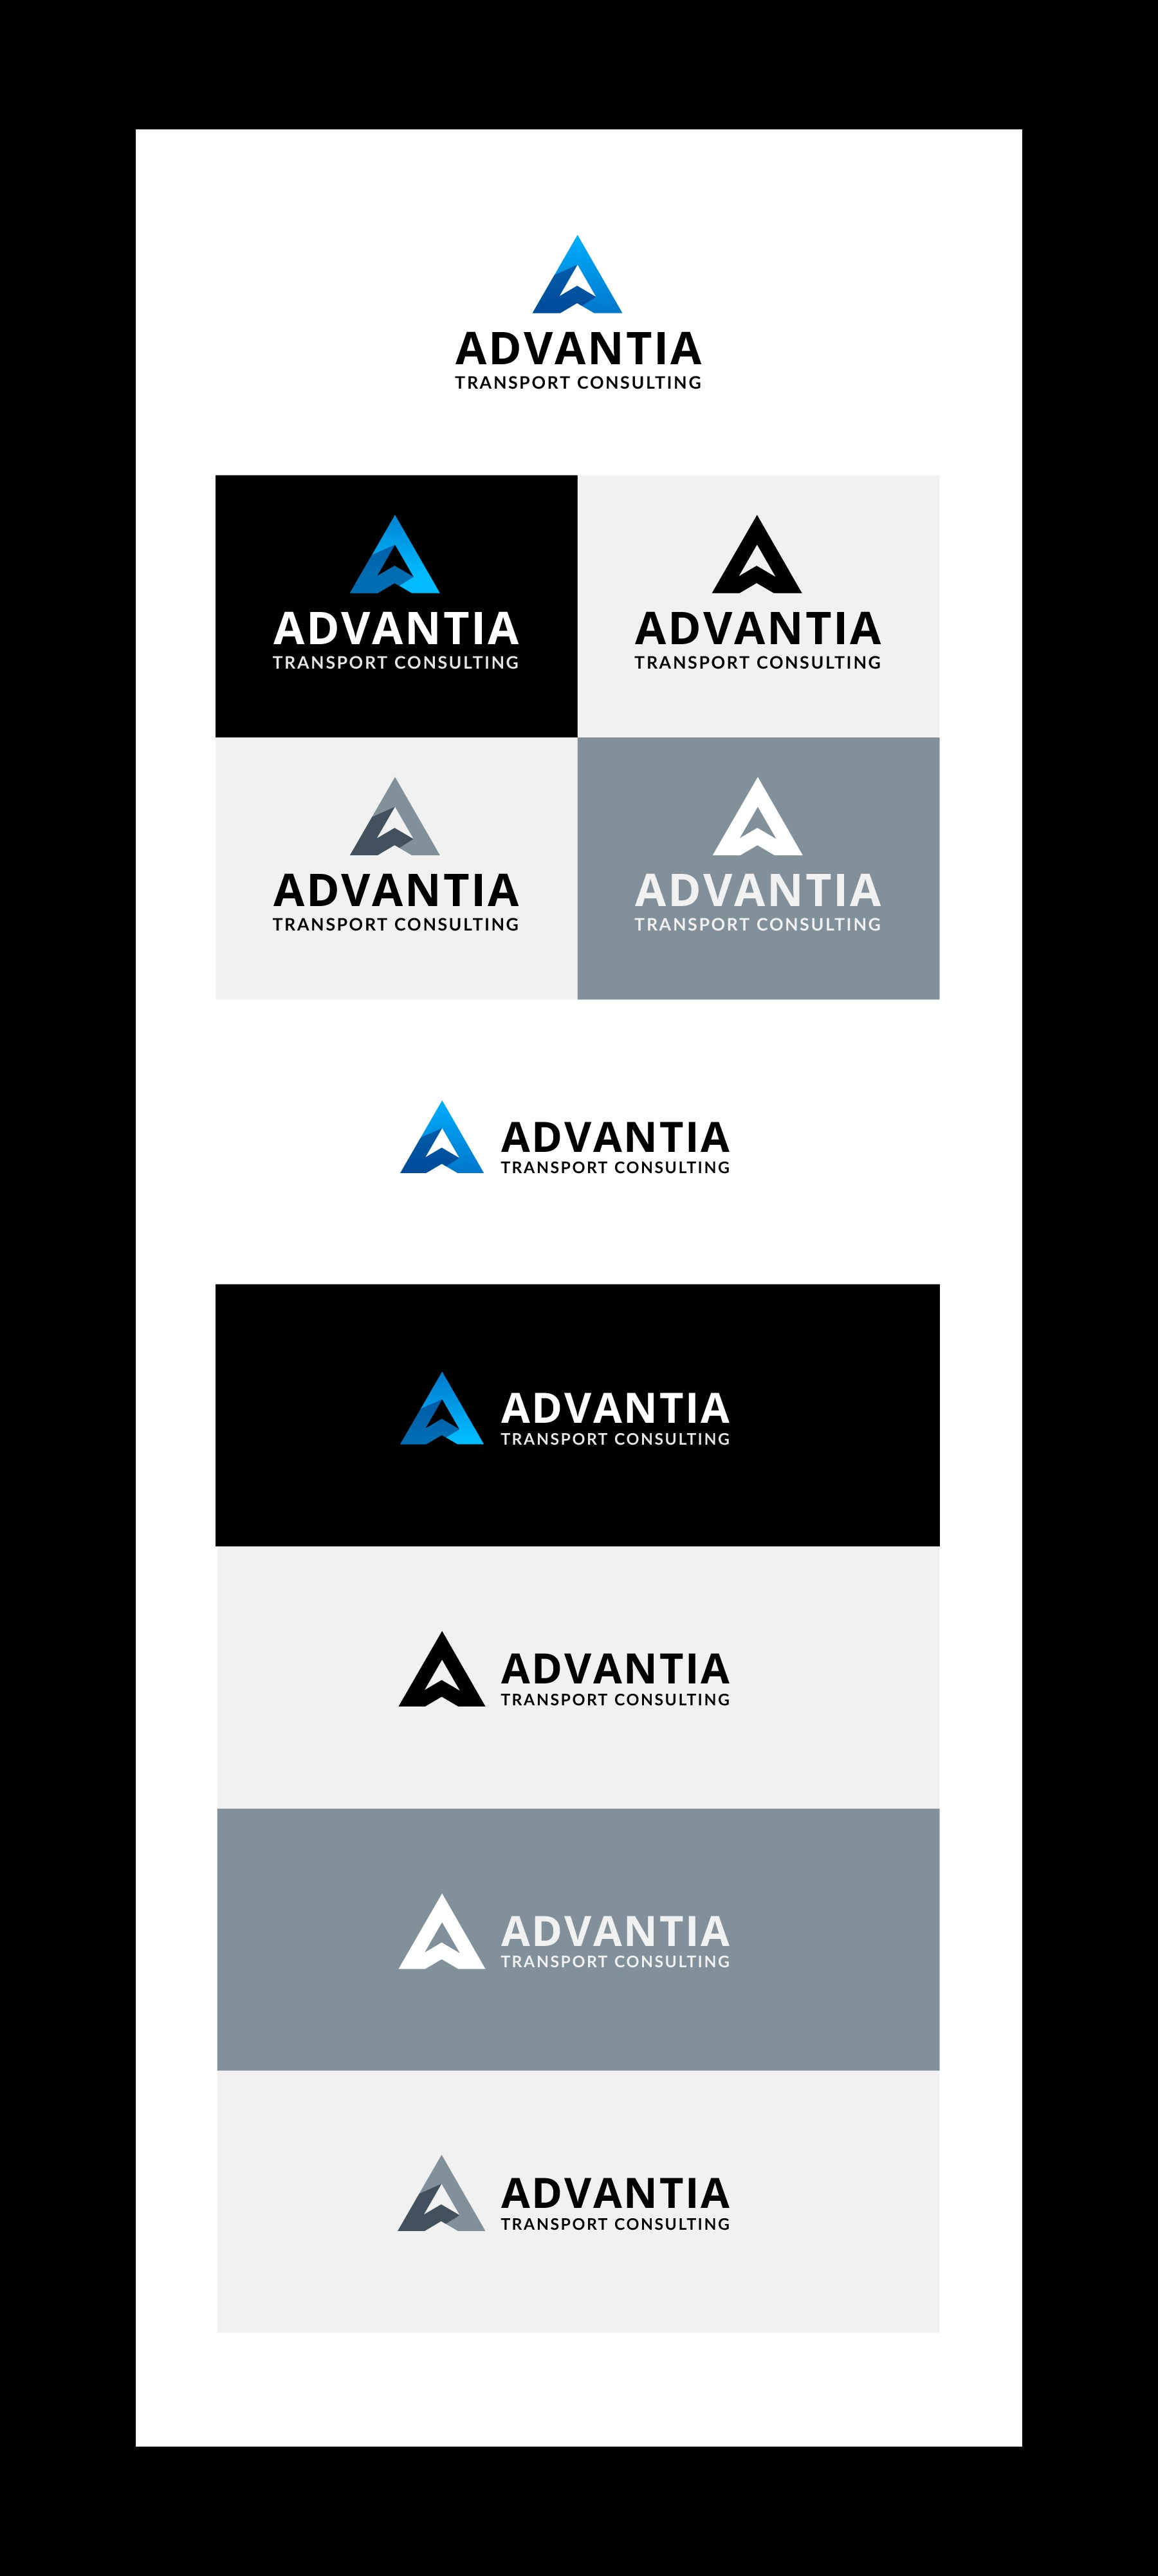 Fresh new logo for an established but rapidly growing consulting business